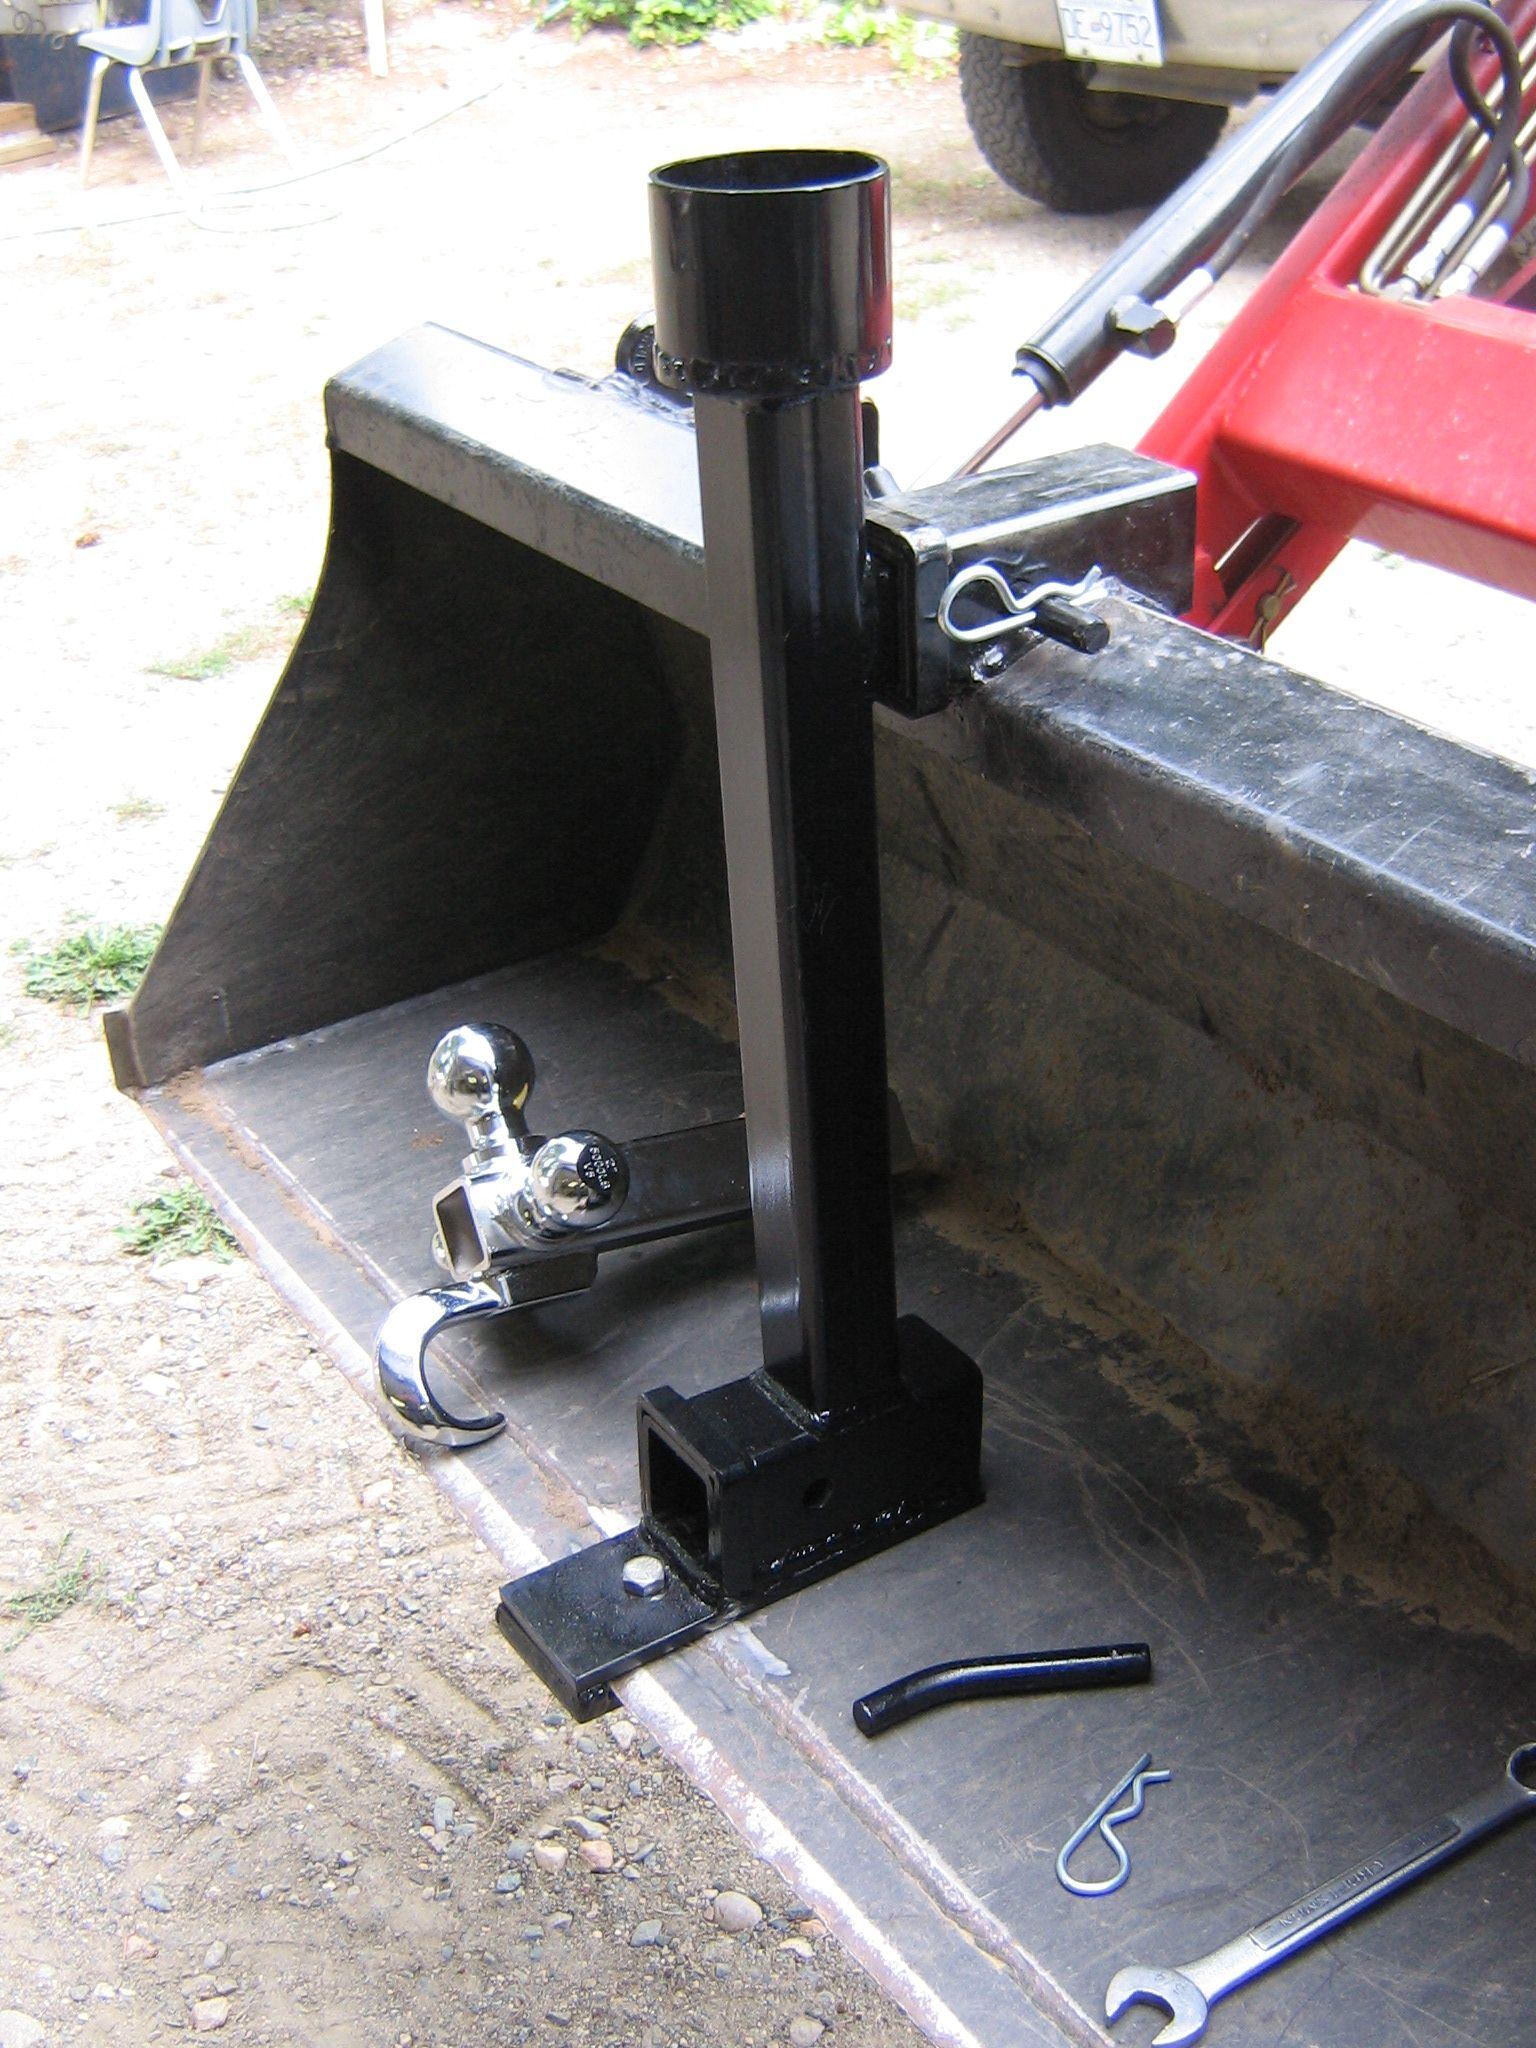 Homemade Tractor Bucket Level Indicator - Year of Clean Water